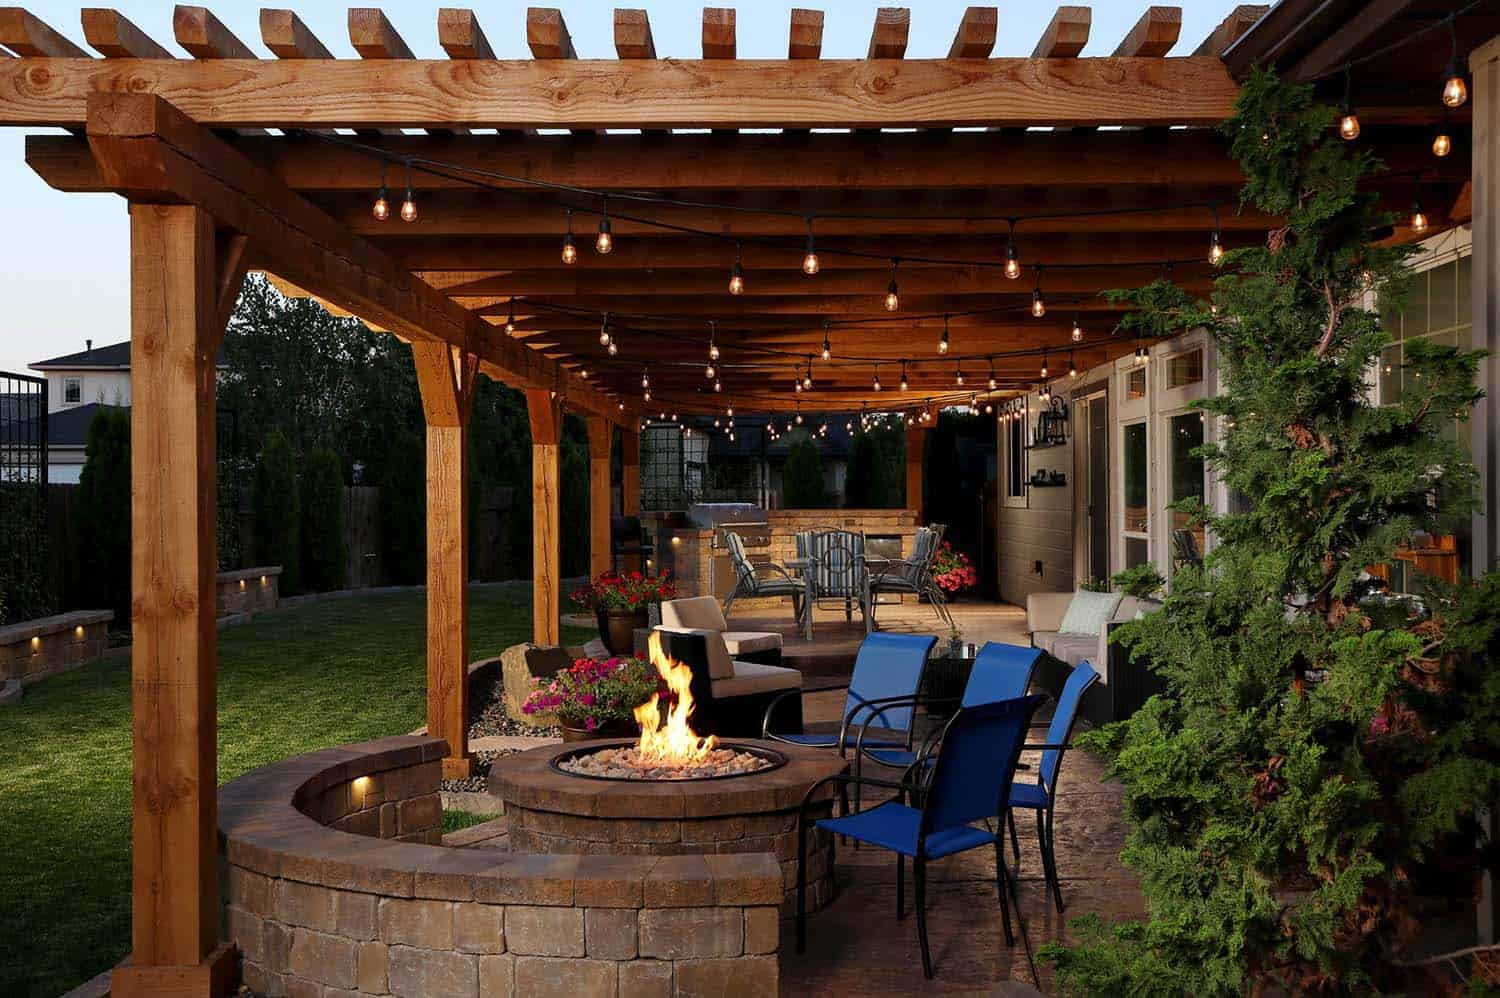 Attirant Fabulous Outdoor Patio Ideas 11 1 Kindesign